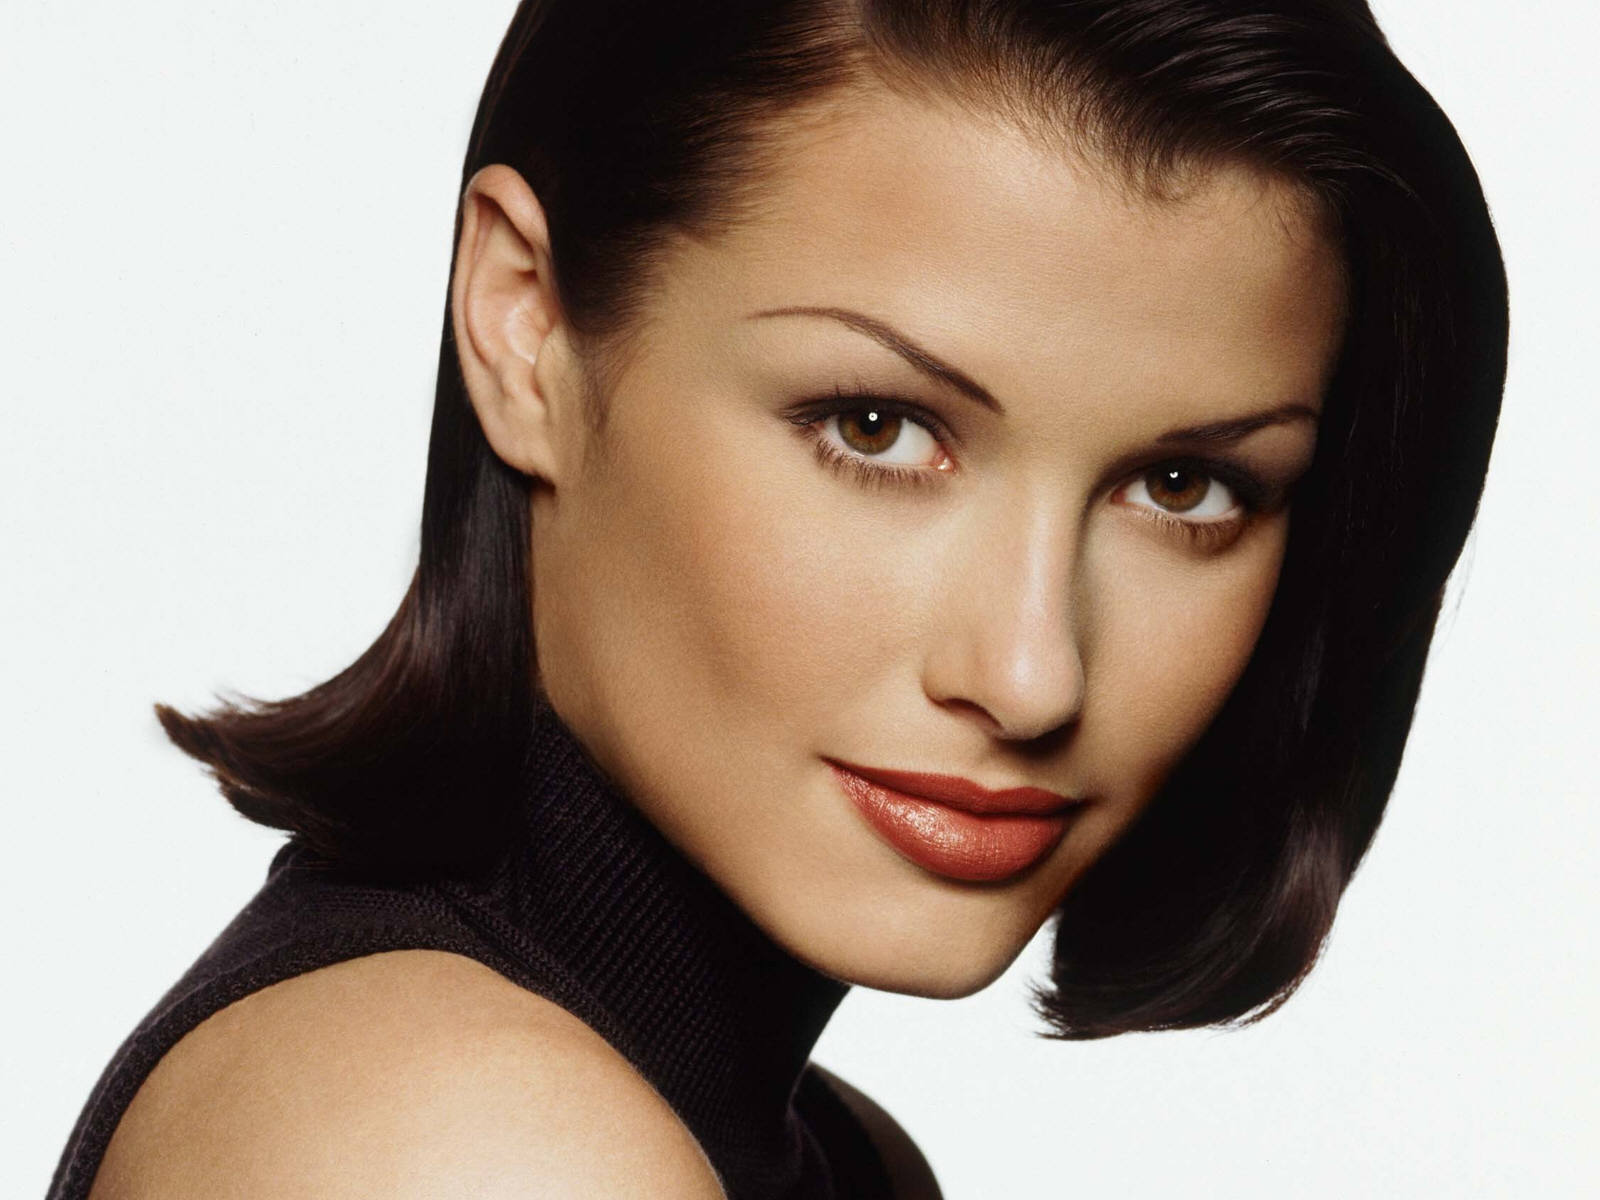 bridget moynahan striking brown eyes sexy actor beautiful brunette model